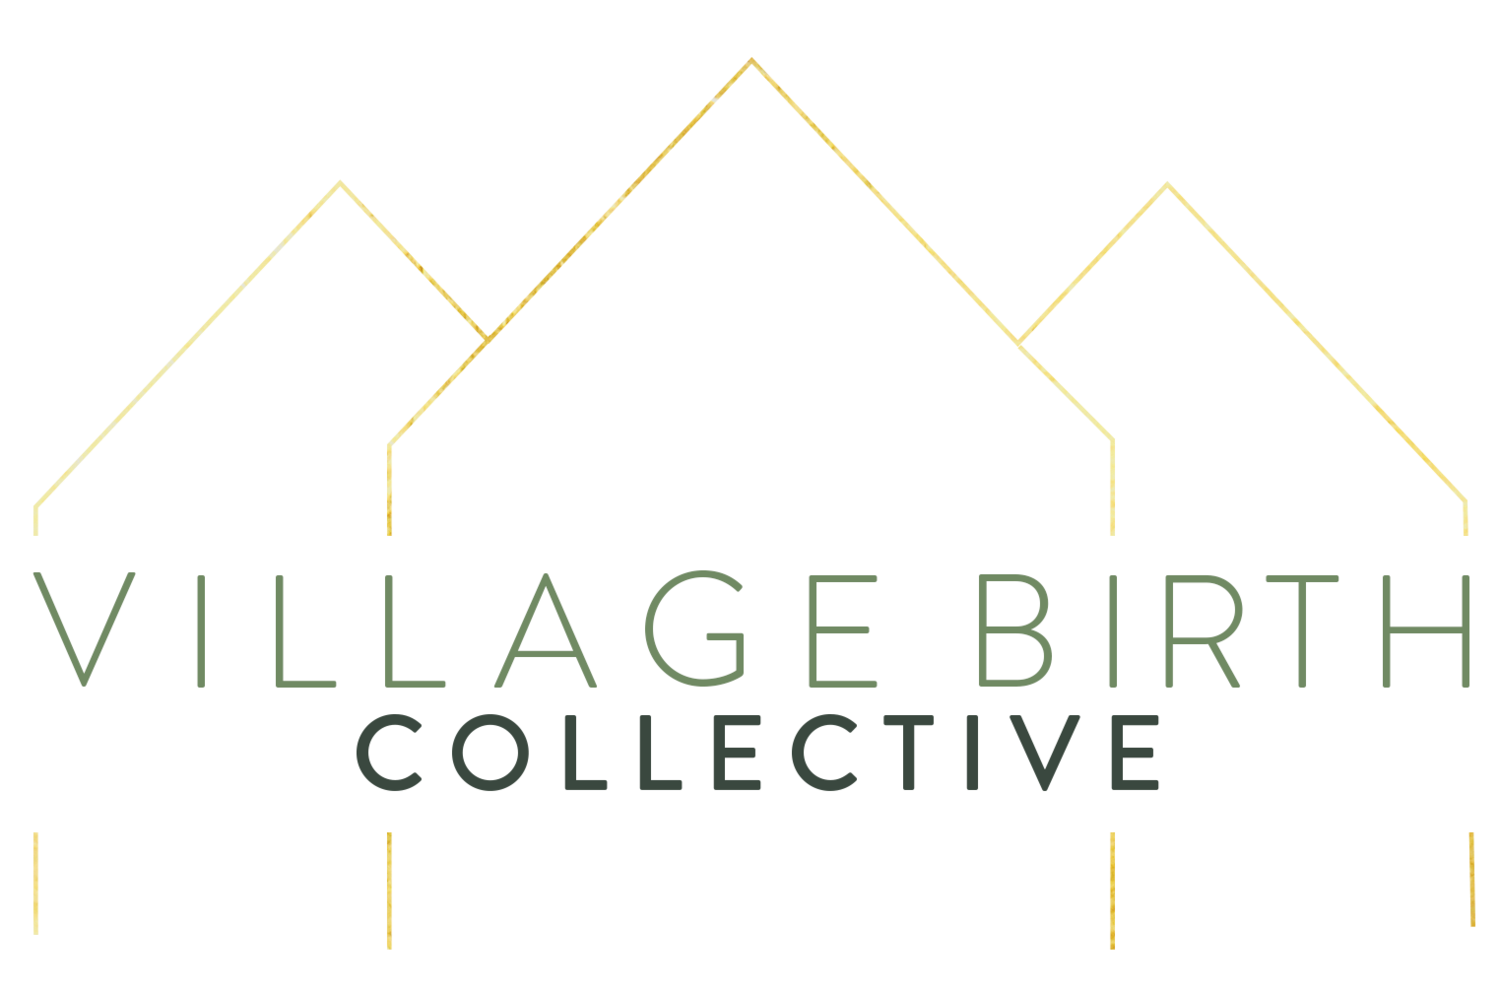 Village Birth Collective